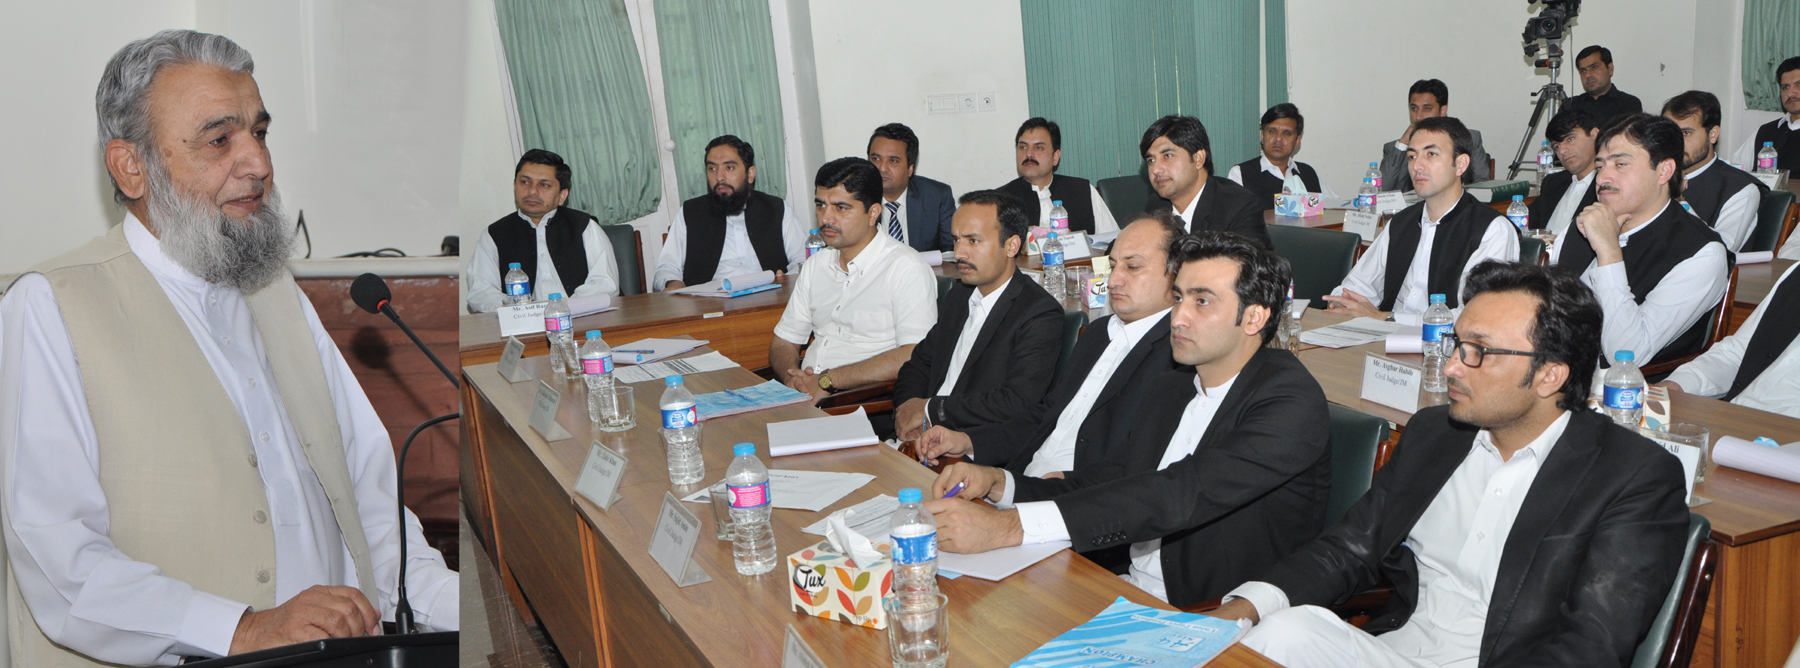 mr justice rtd muhammad raza khan delivered extension lecture on